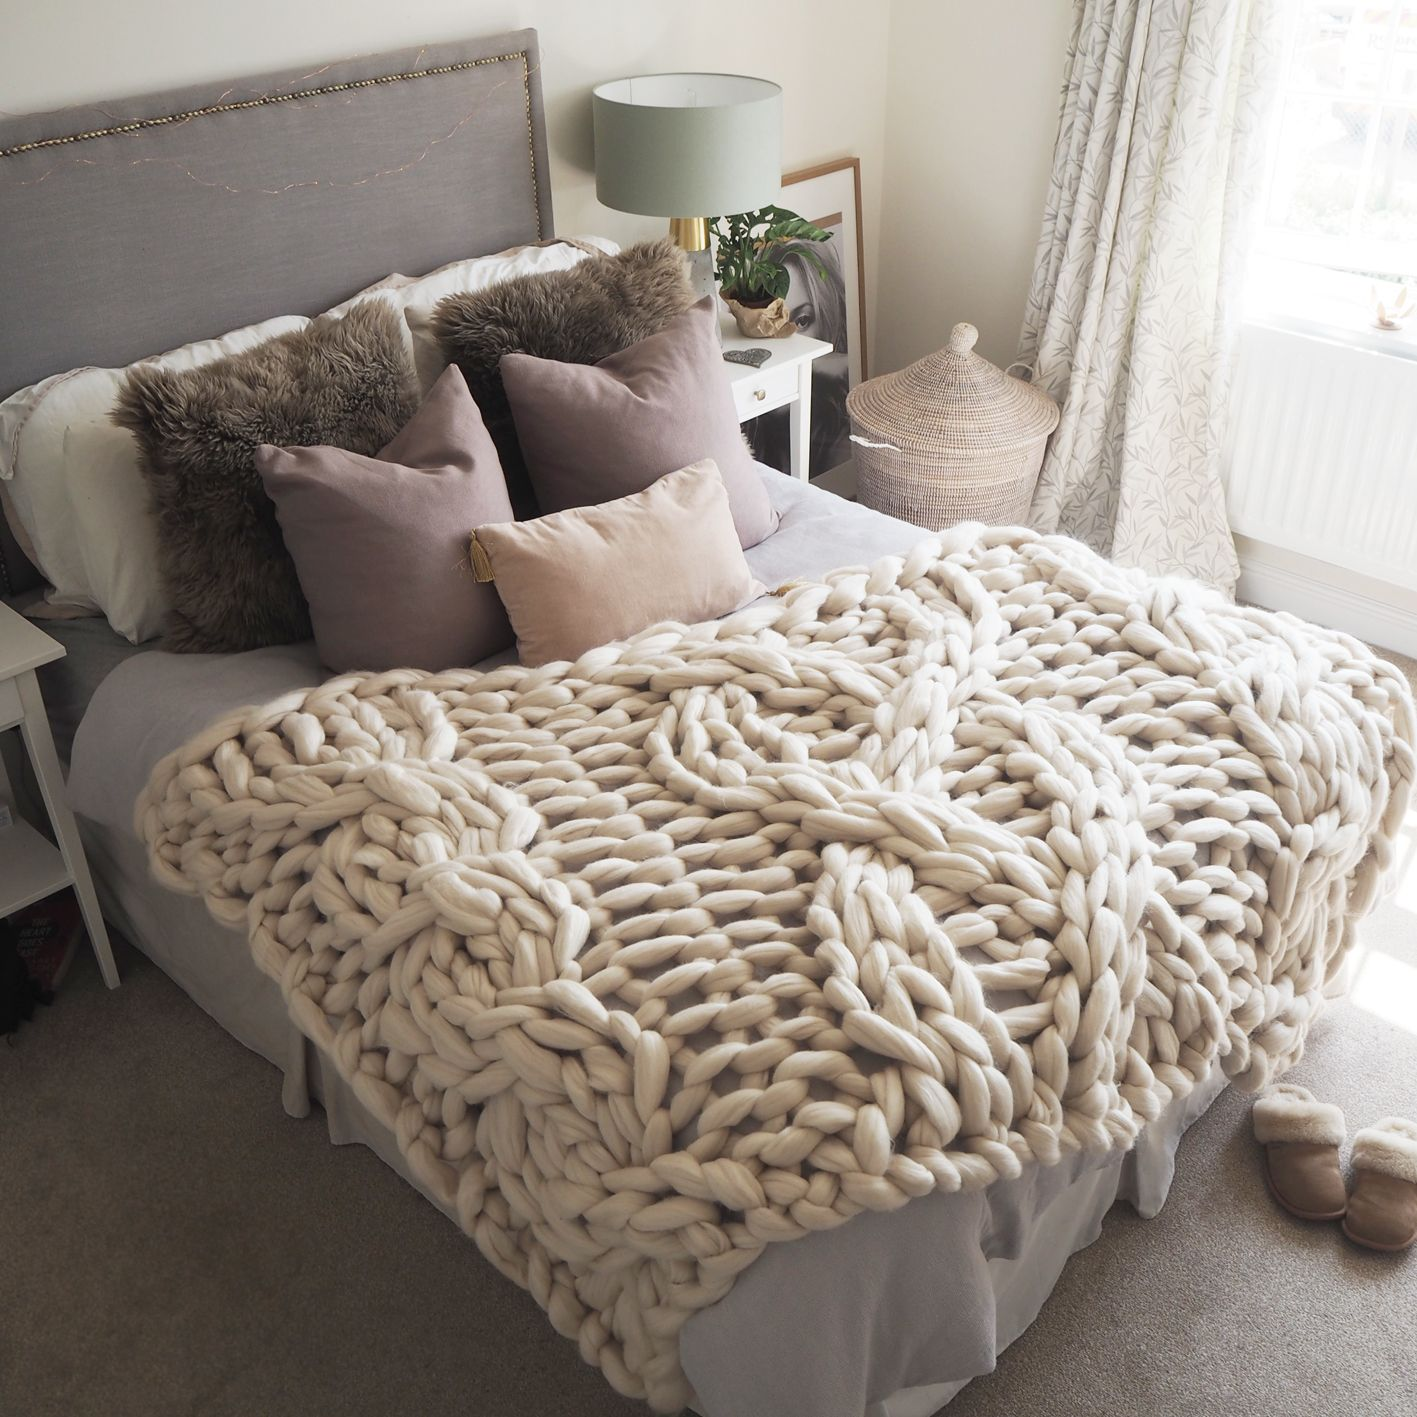 Giant Cable Knit Blanket Blanket Cable Knit Blankets Knitted